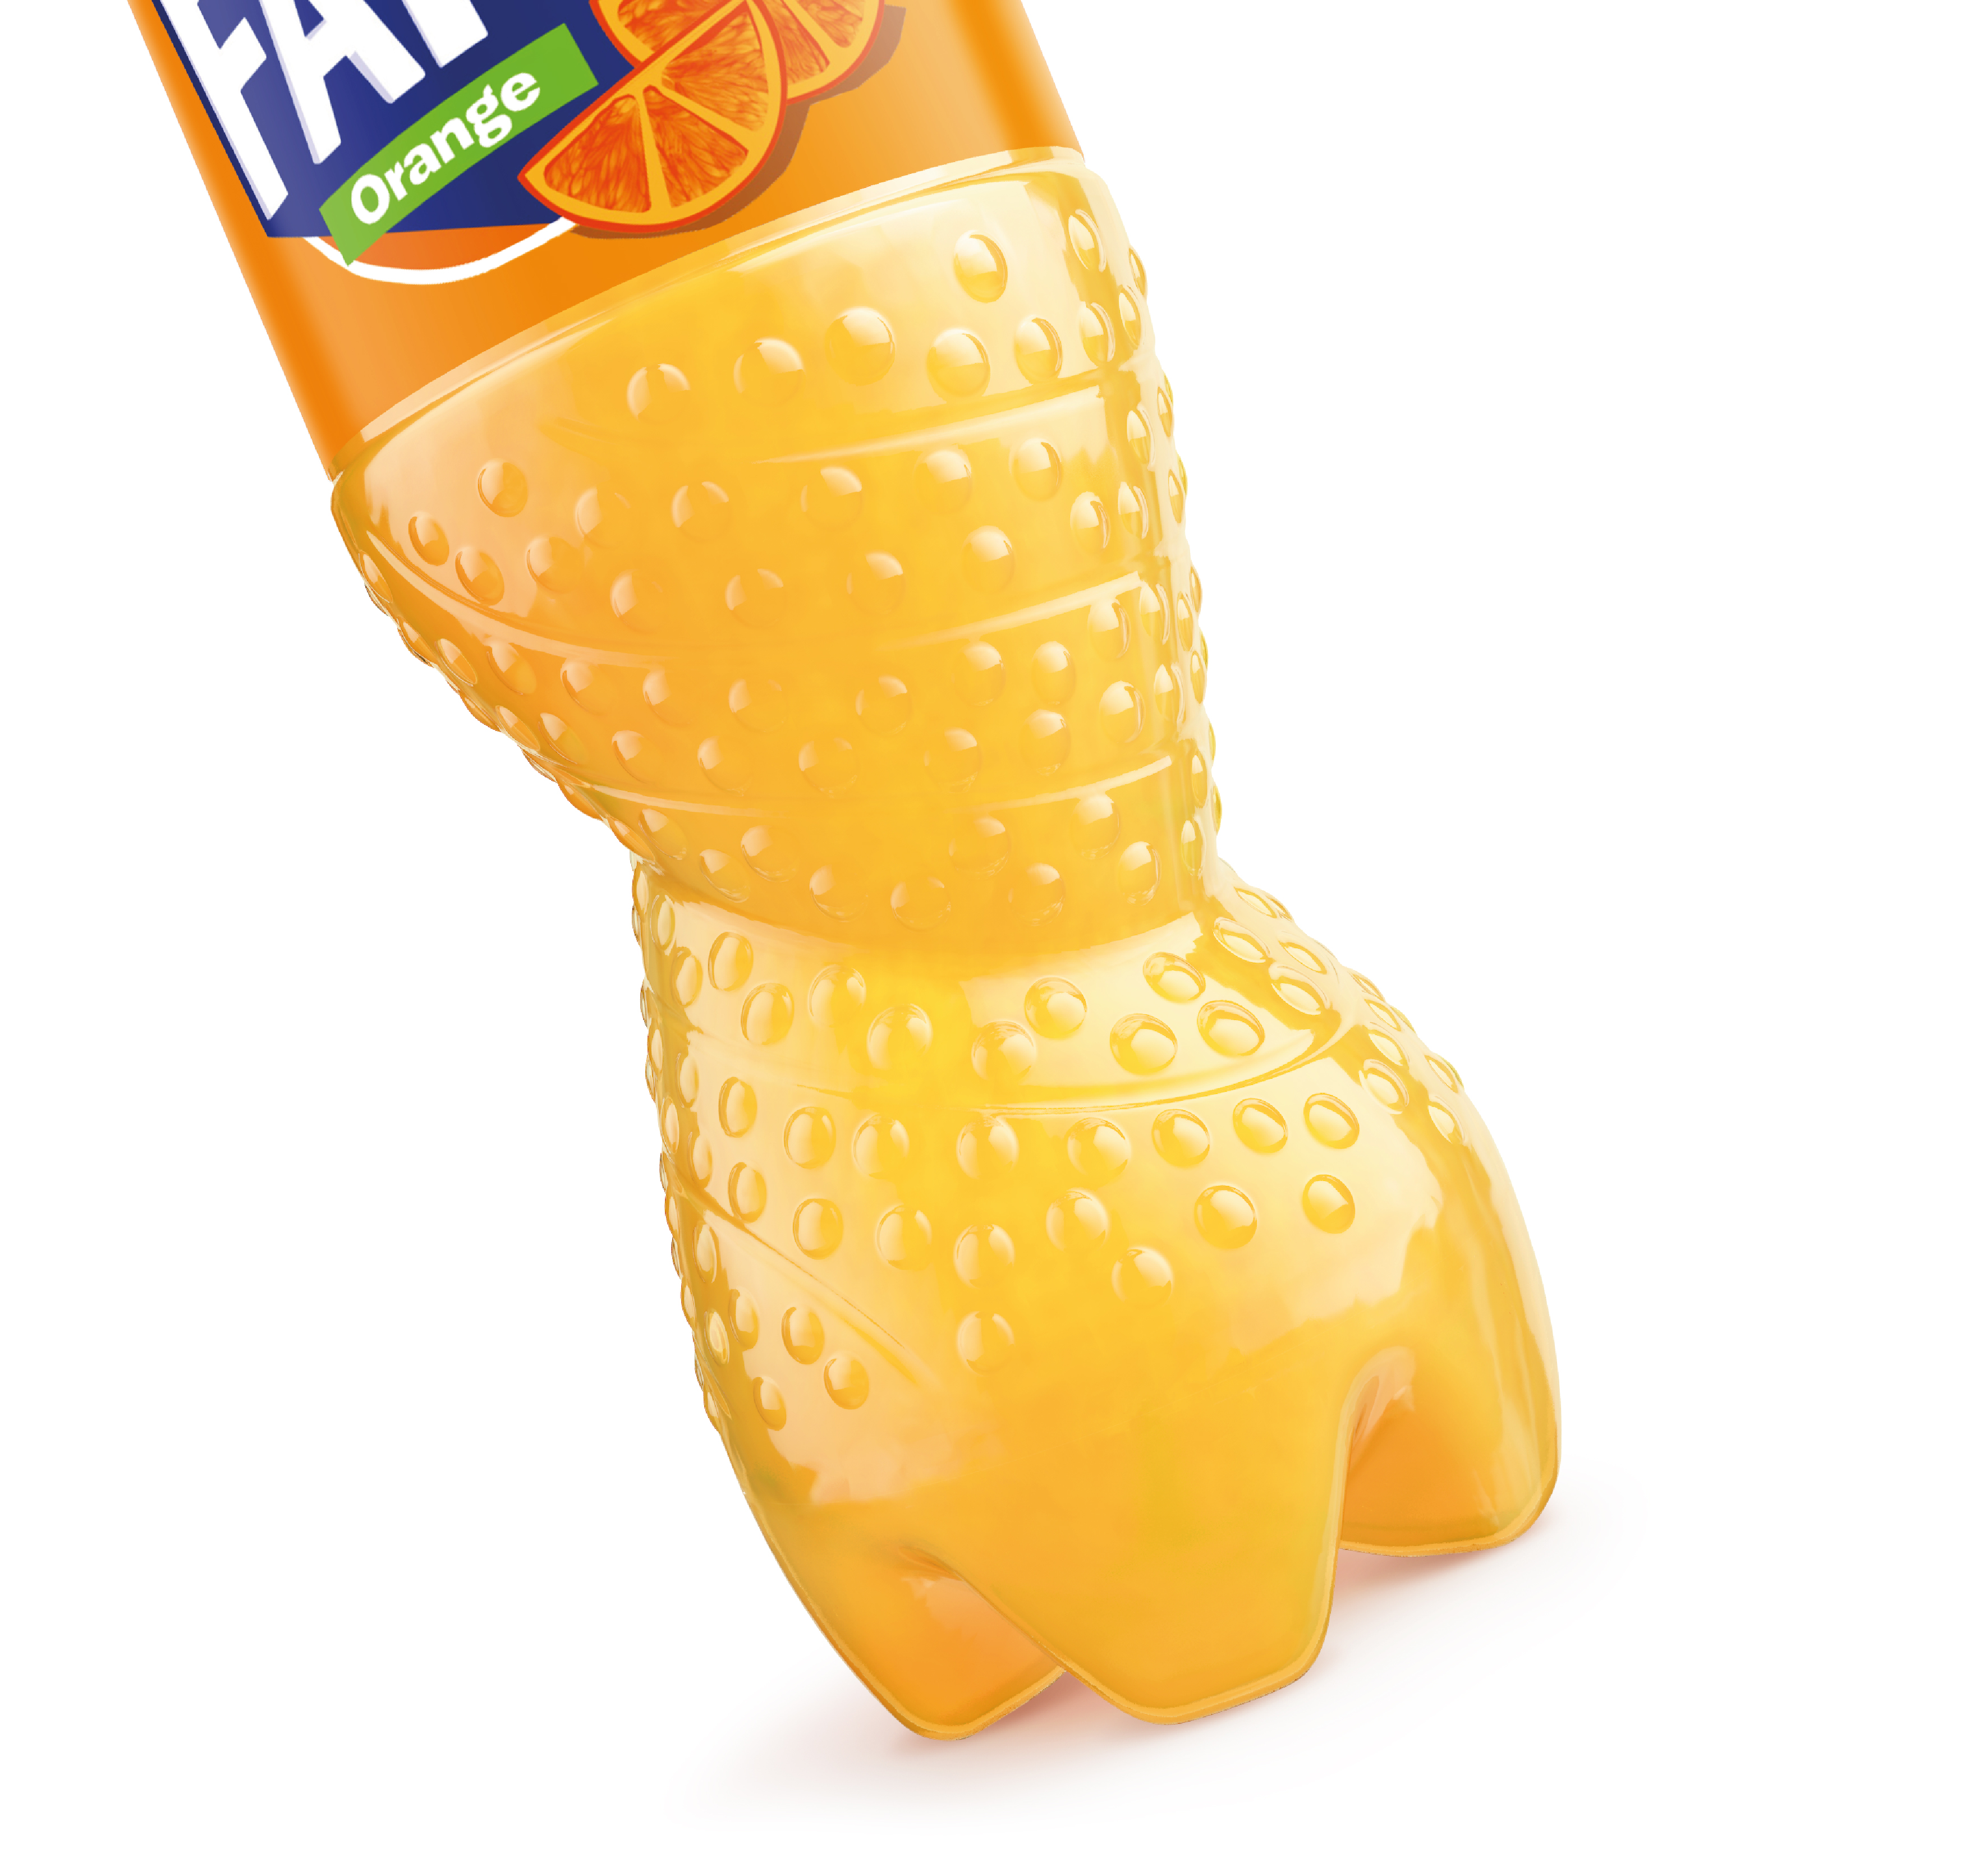 Fanta Reborn In New Spiral Pet Bottle photo